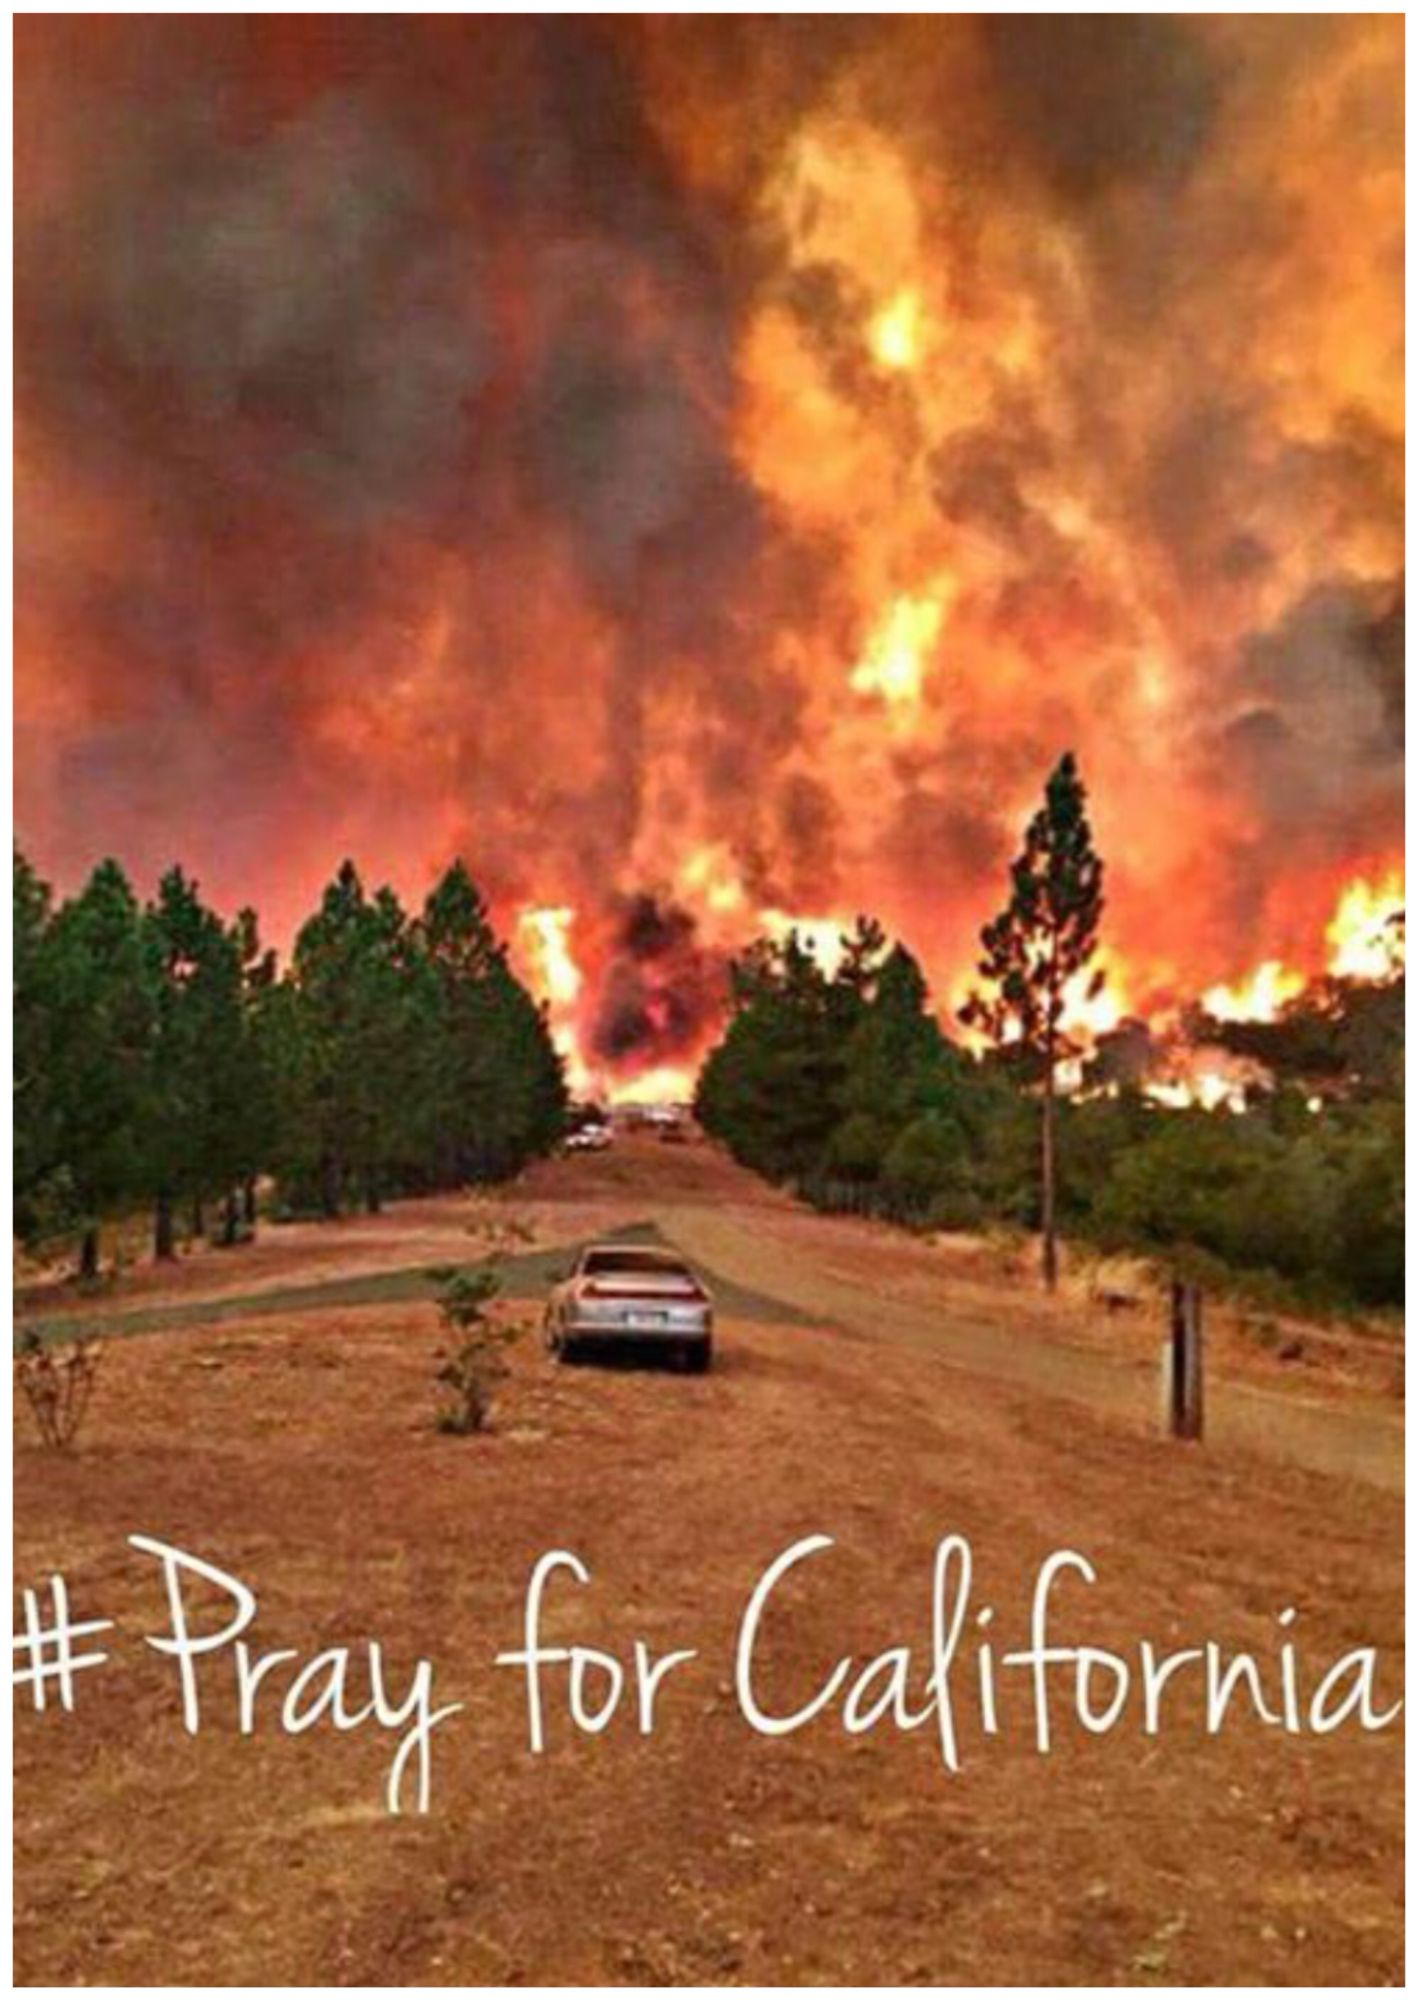 Prayer Warriors Pray For Those Displaced By This Fire Comfort For Families Who Lost Their Loved Ones P California Wildfires Calaveras County California